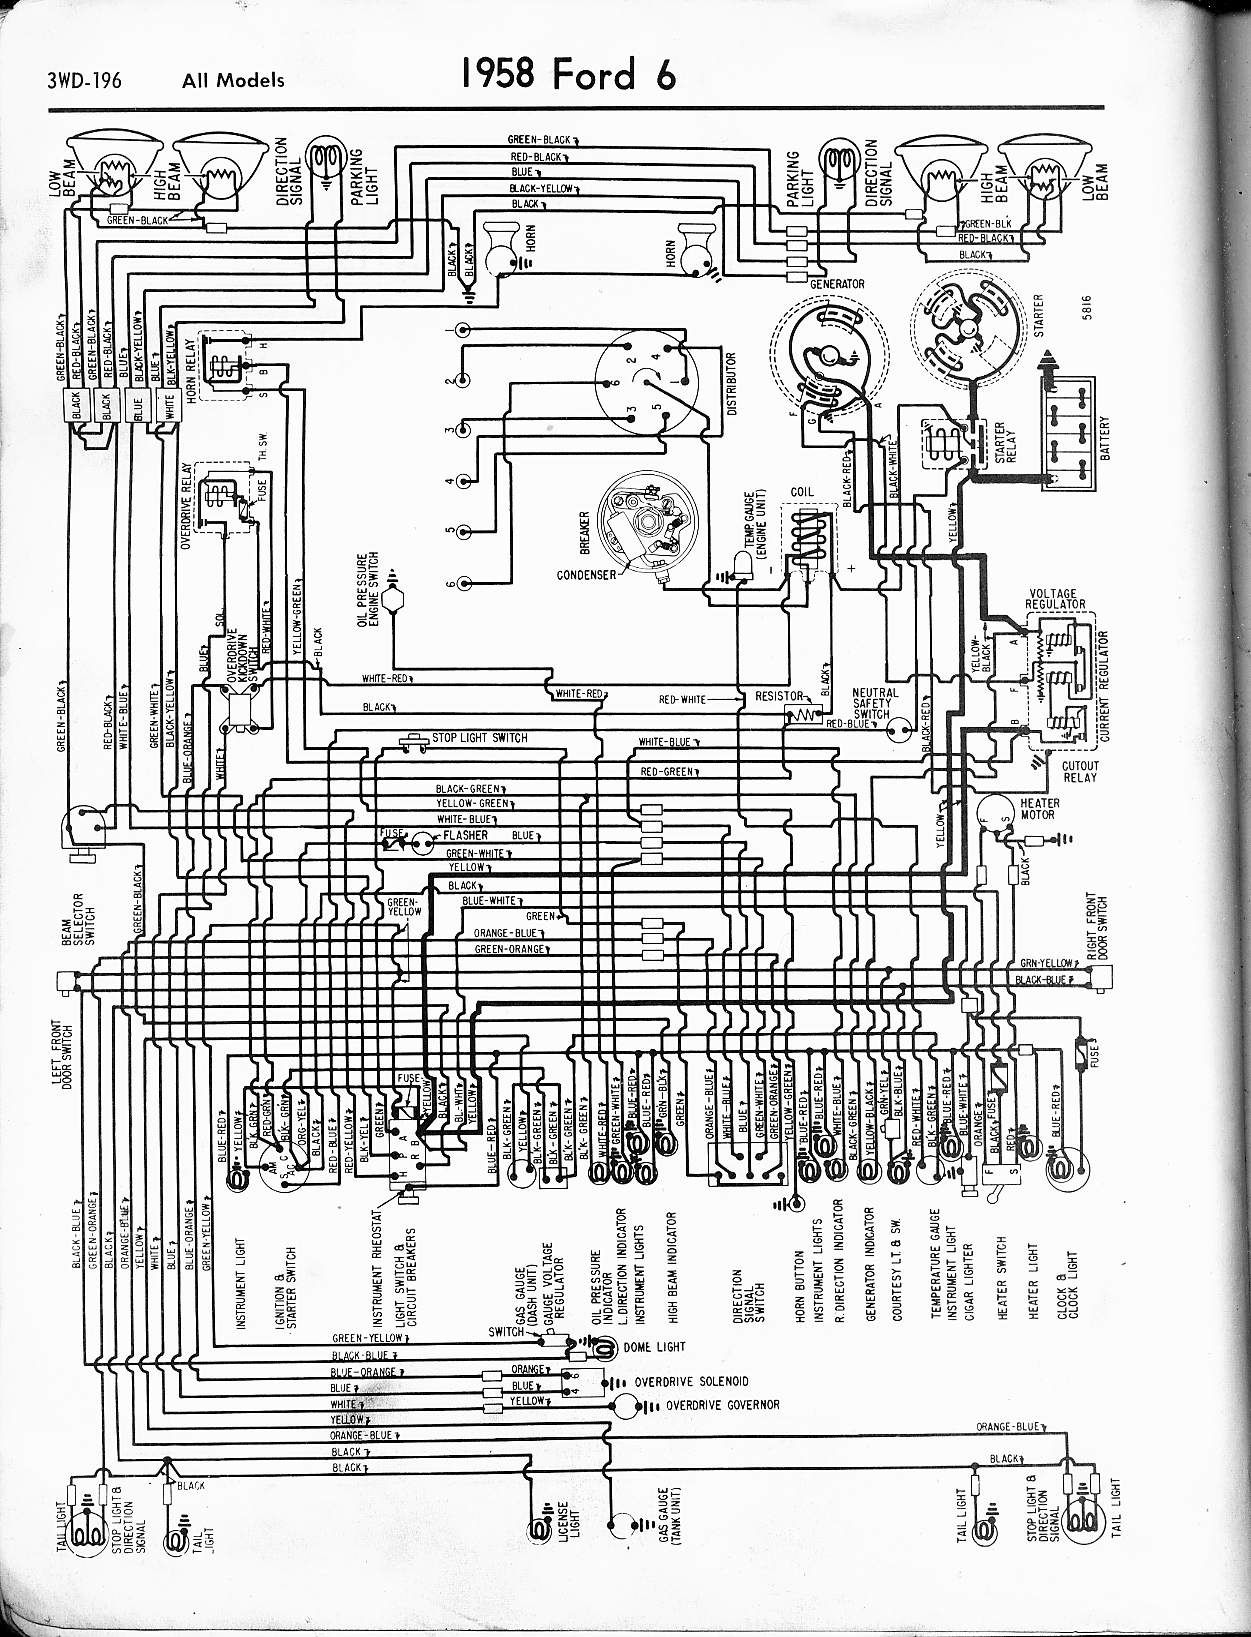 2002 ford thunderbird fuse box diagram 1955 thunderbird fuse box #12